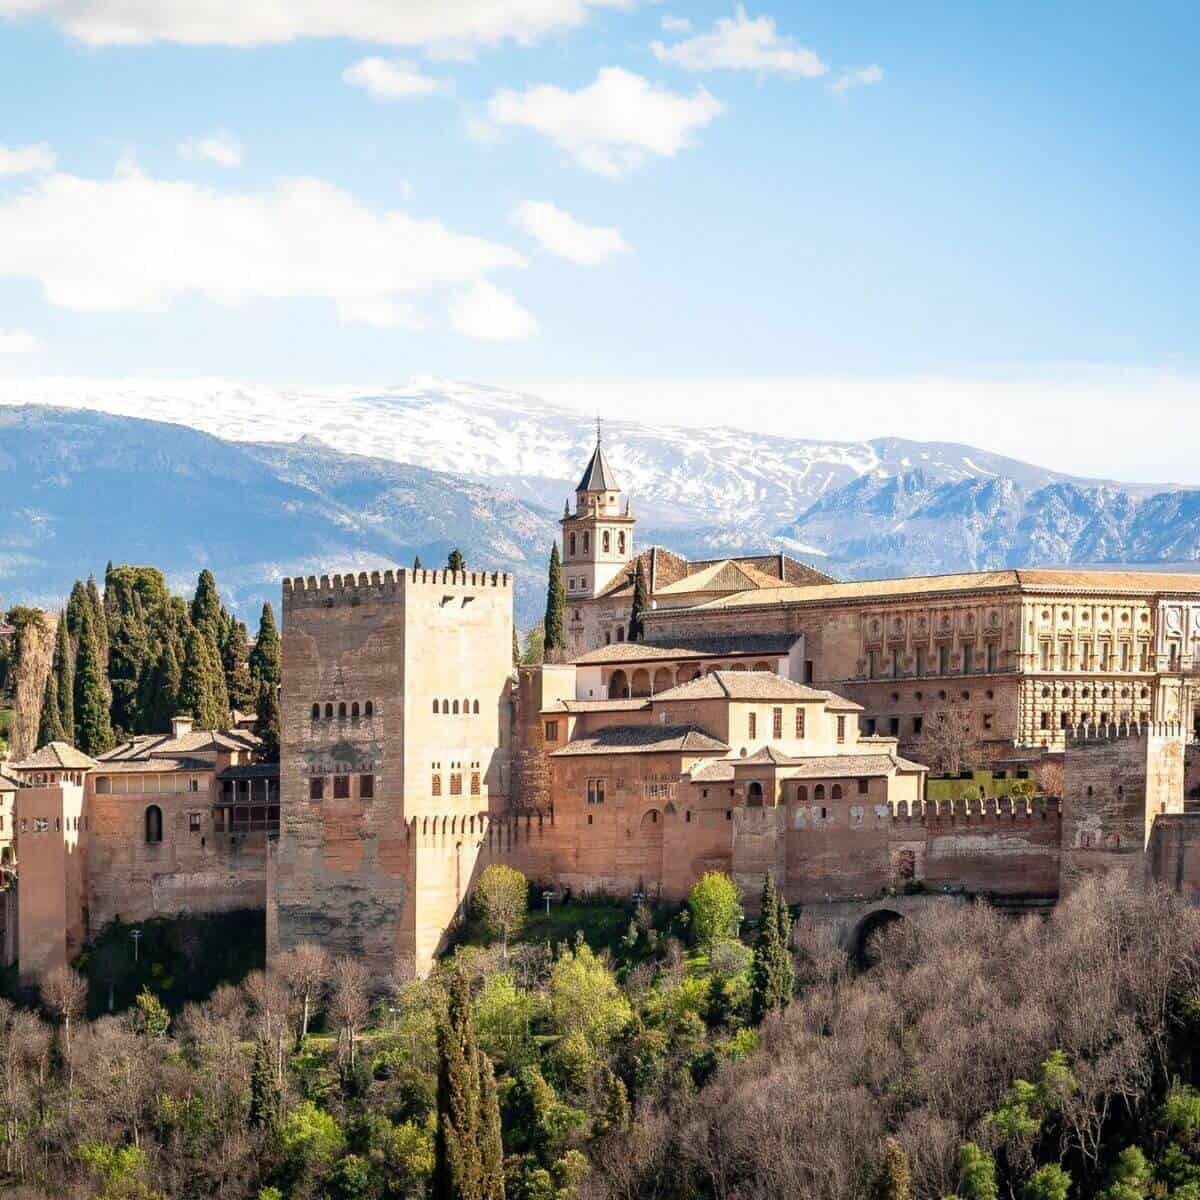 Alhambra palace in Spain with mountains in the background.